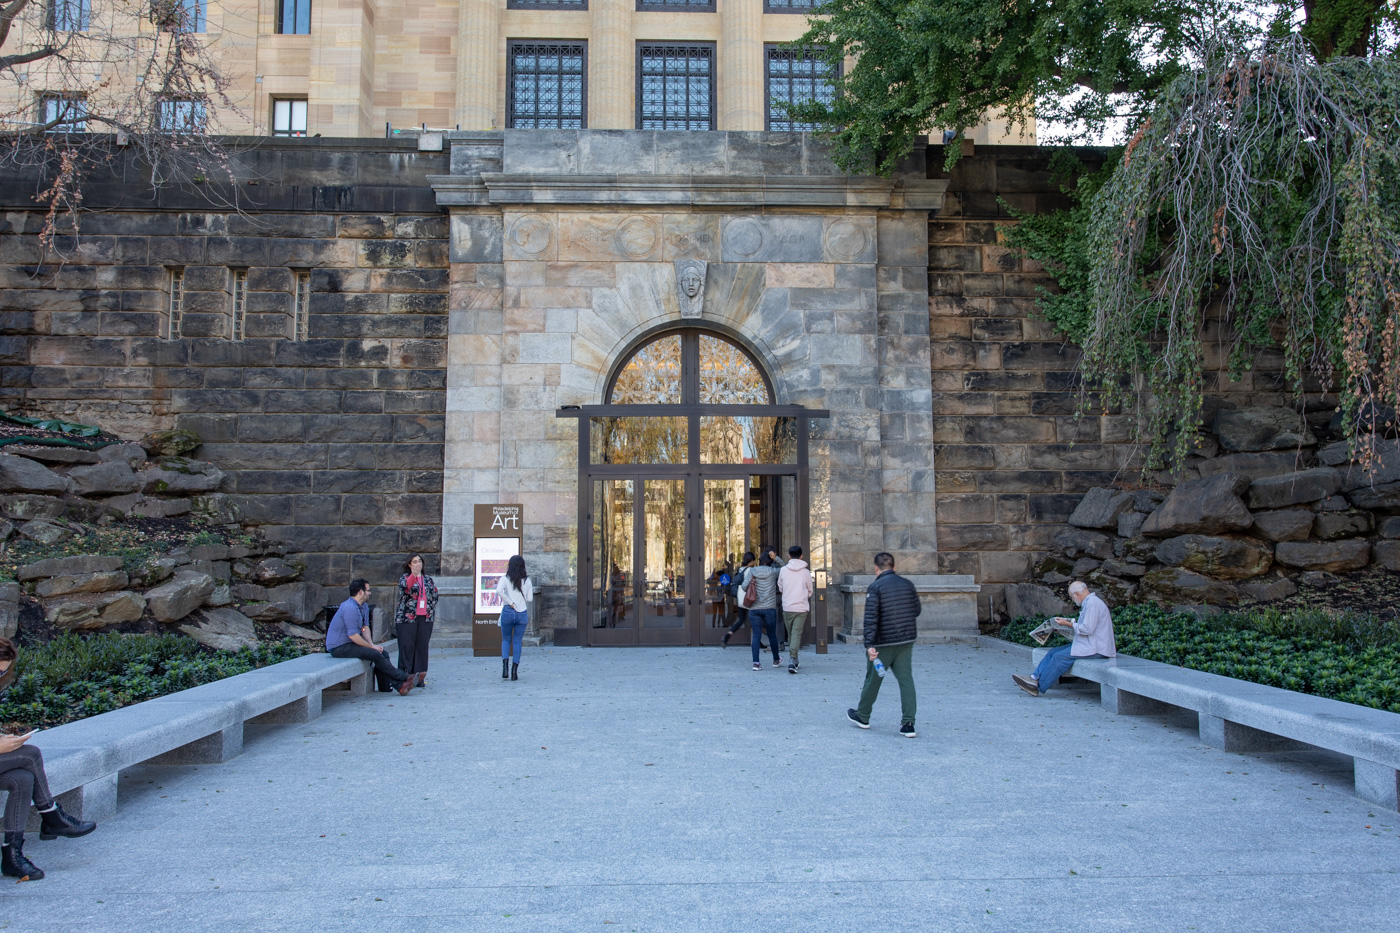 New North Entrance to the Philadelphia Museum of Art